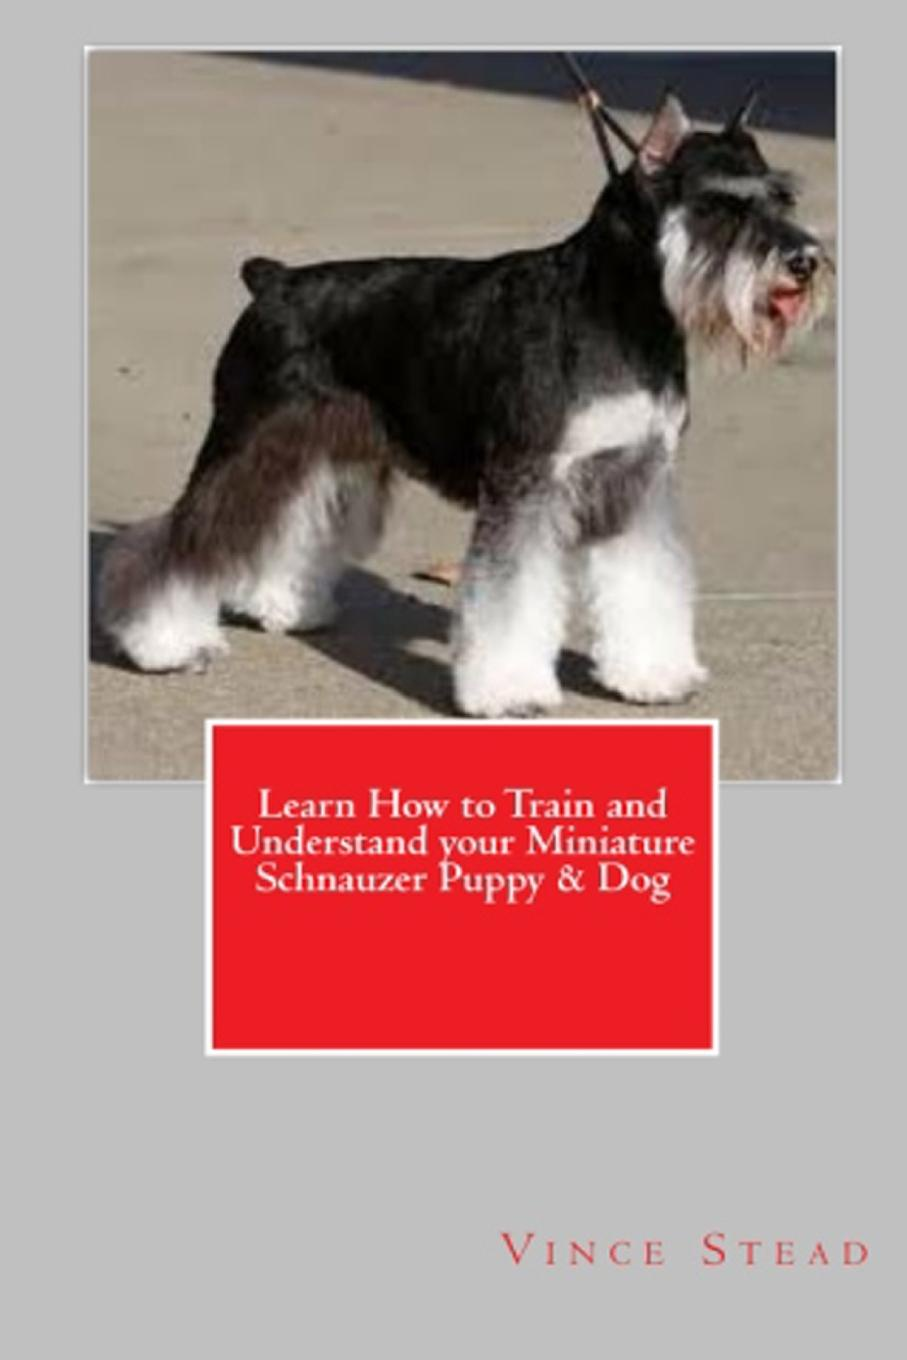 Vince Stead Learn How to Train and Understand your Miniature Schnauzer Puppy . Dog cuteroom dollhouse miniature dining room diy kit with cover and led